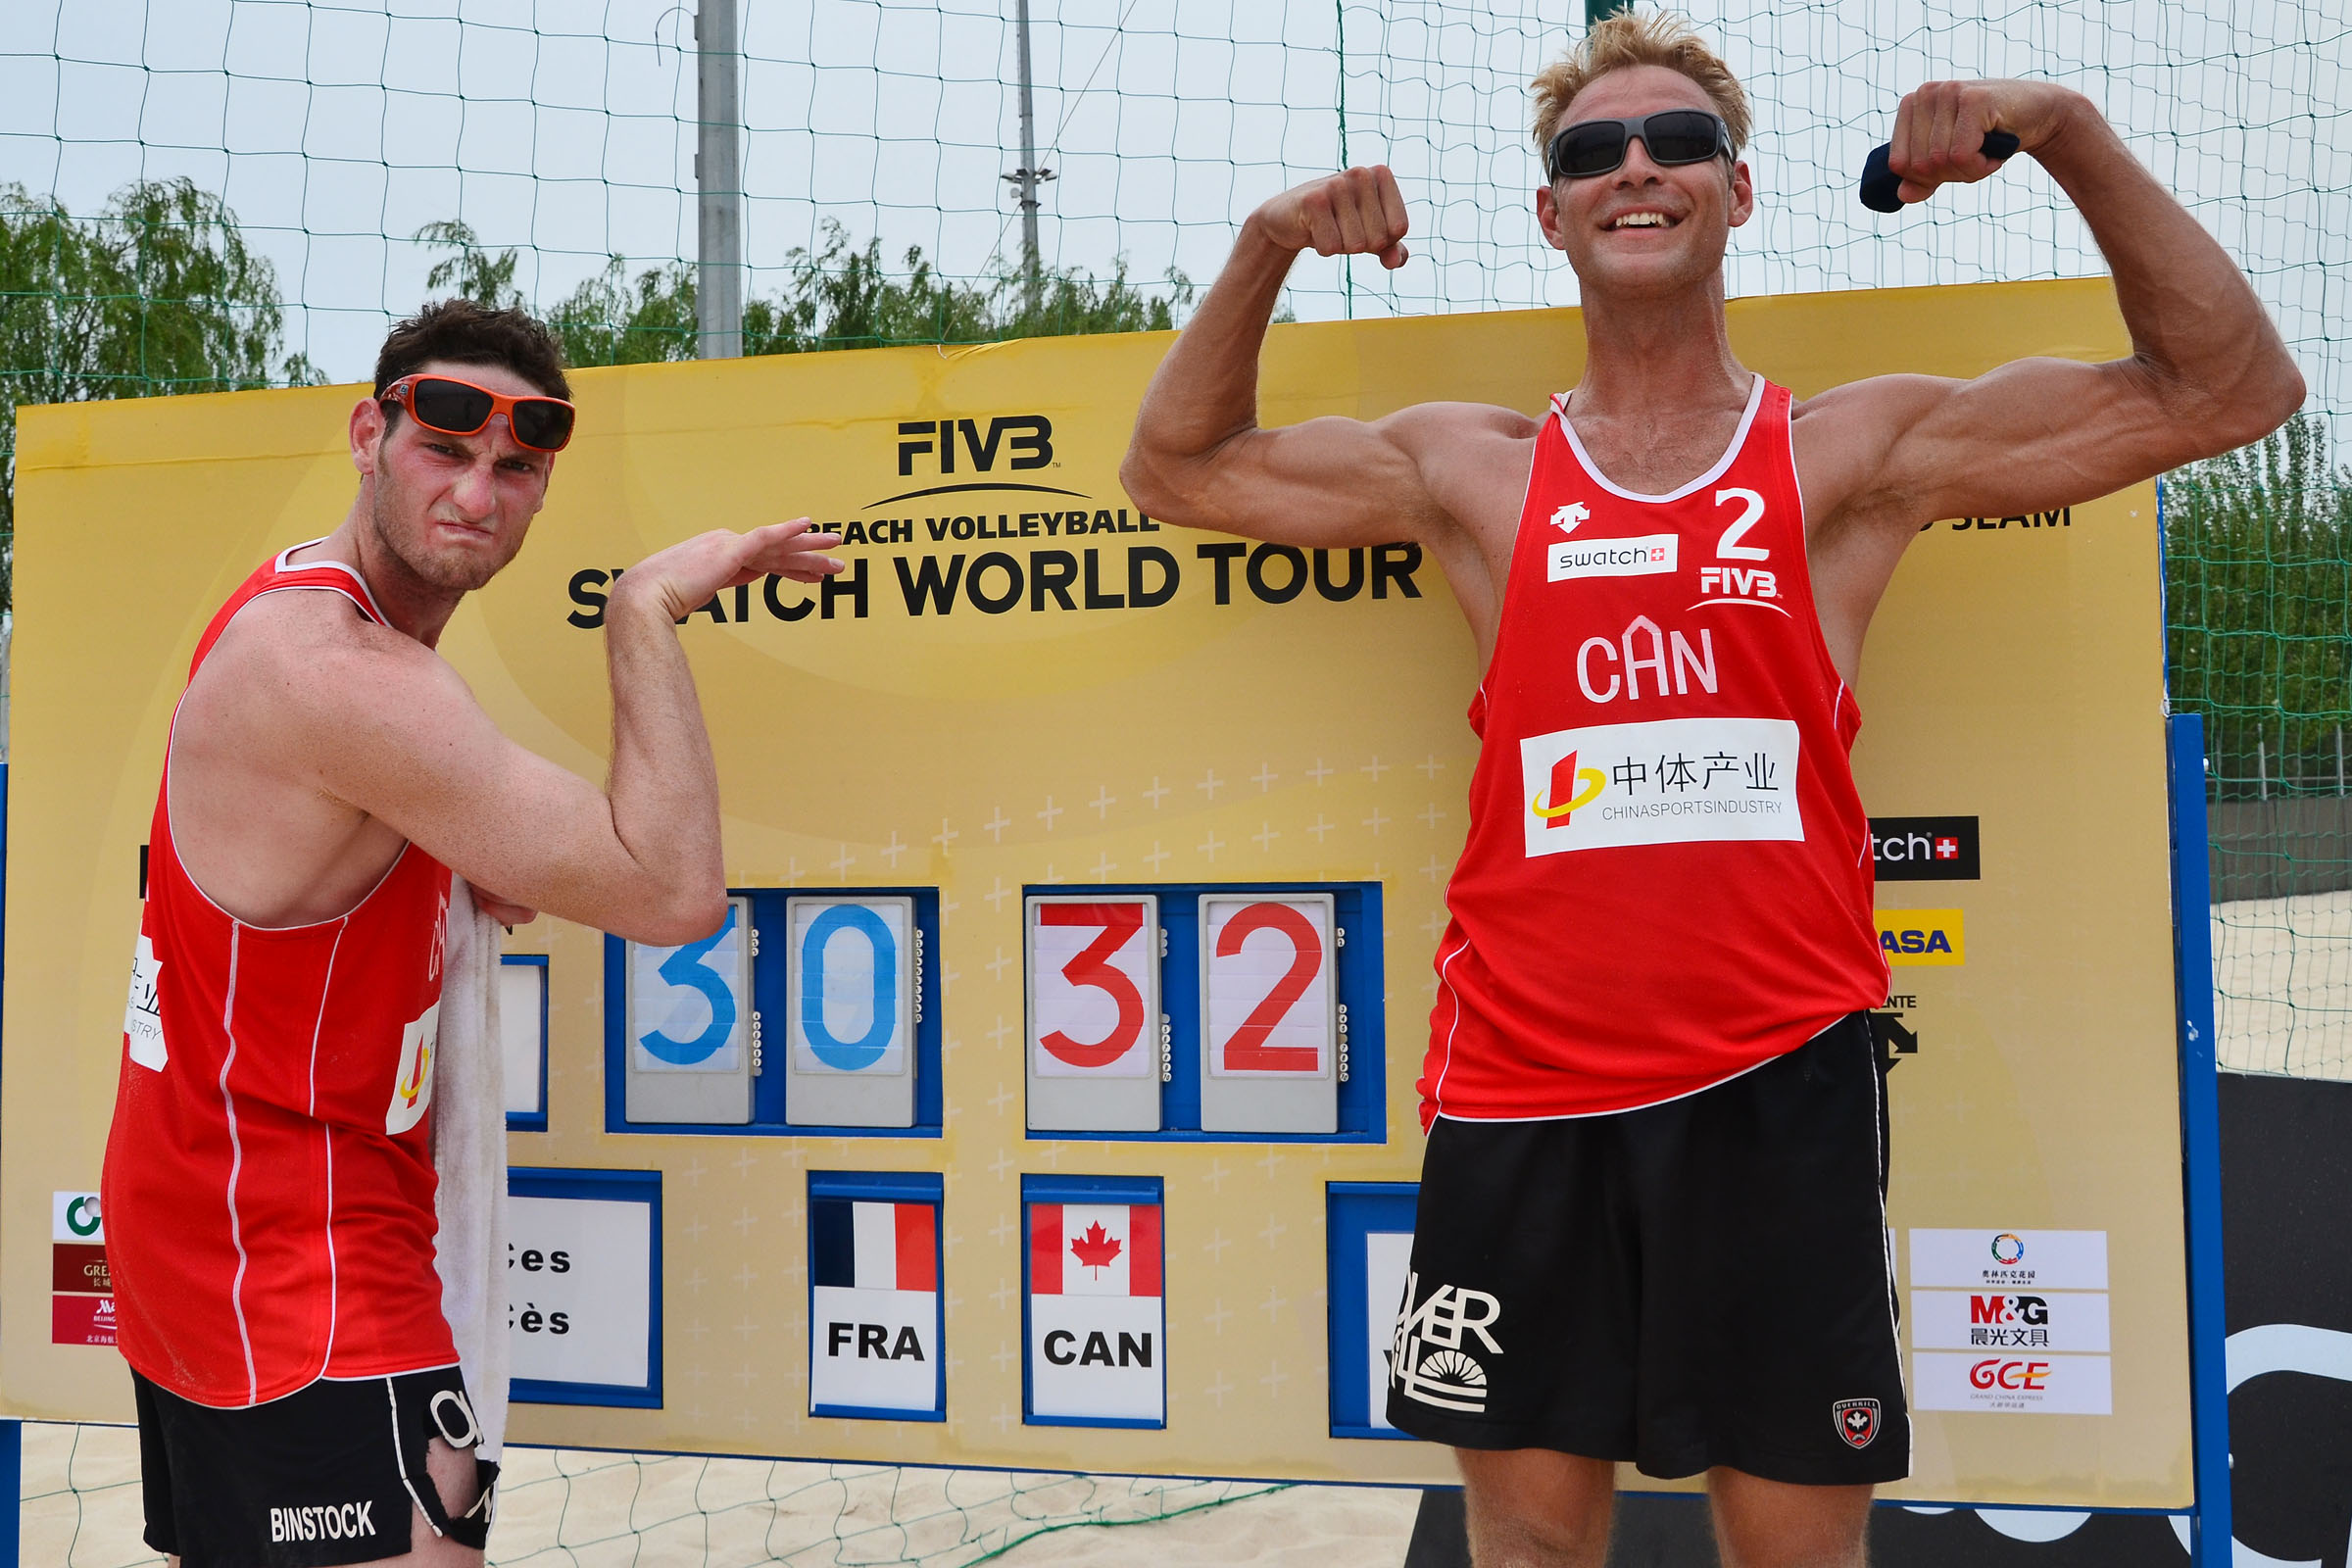 Canadians team josh binstock left and richard van huizen